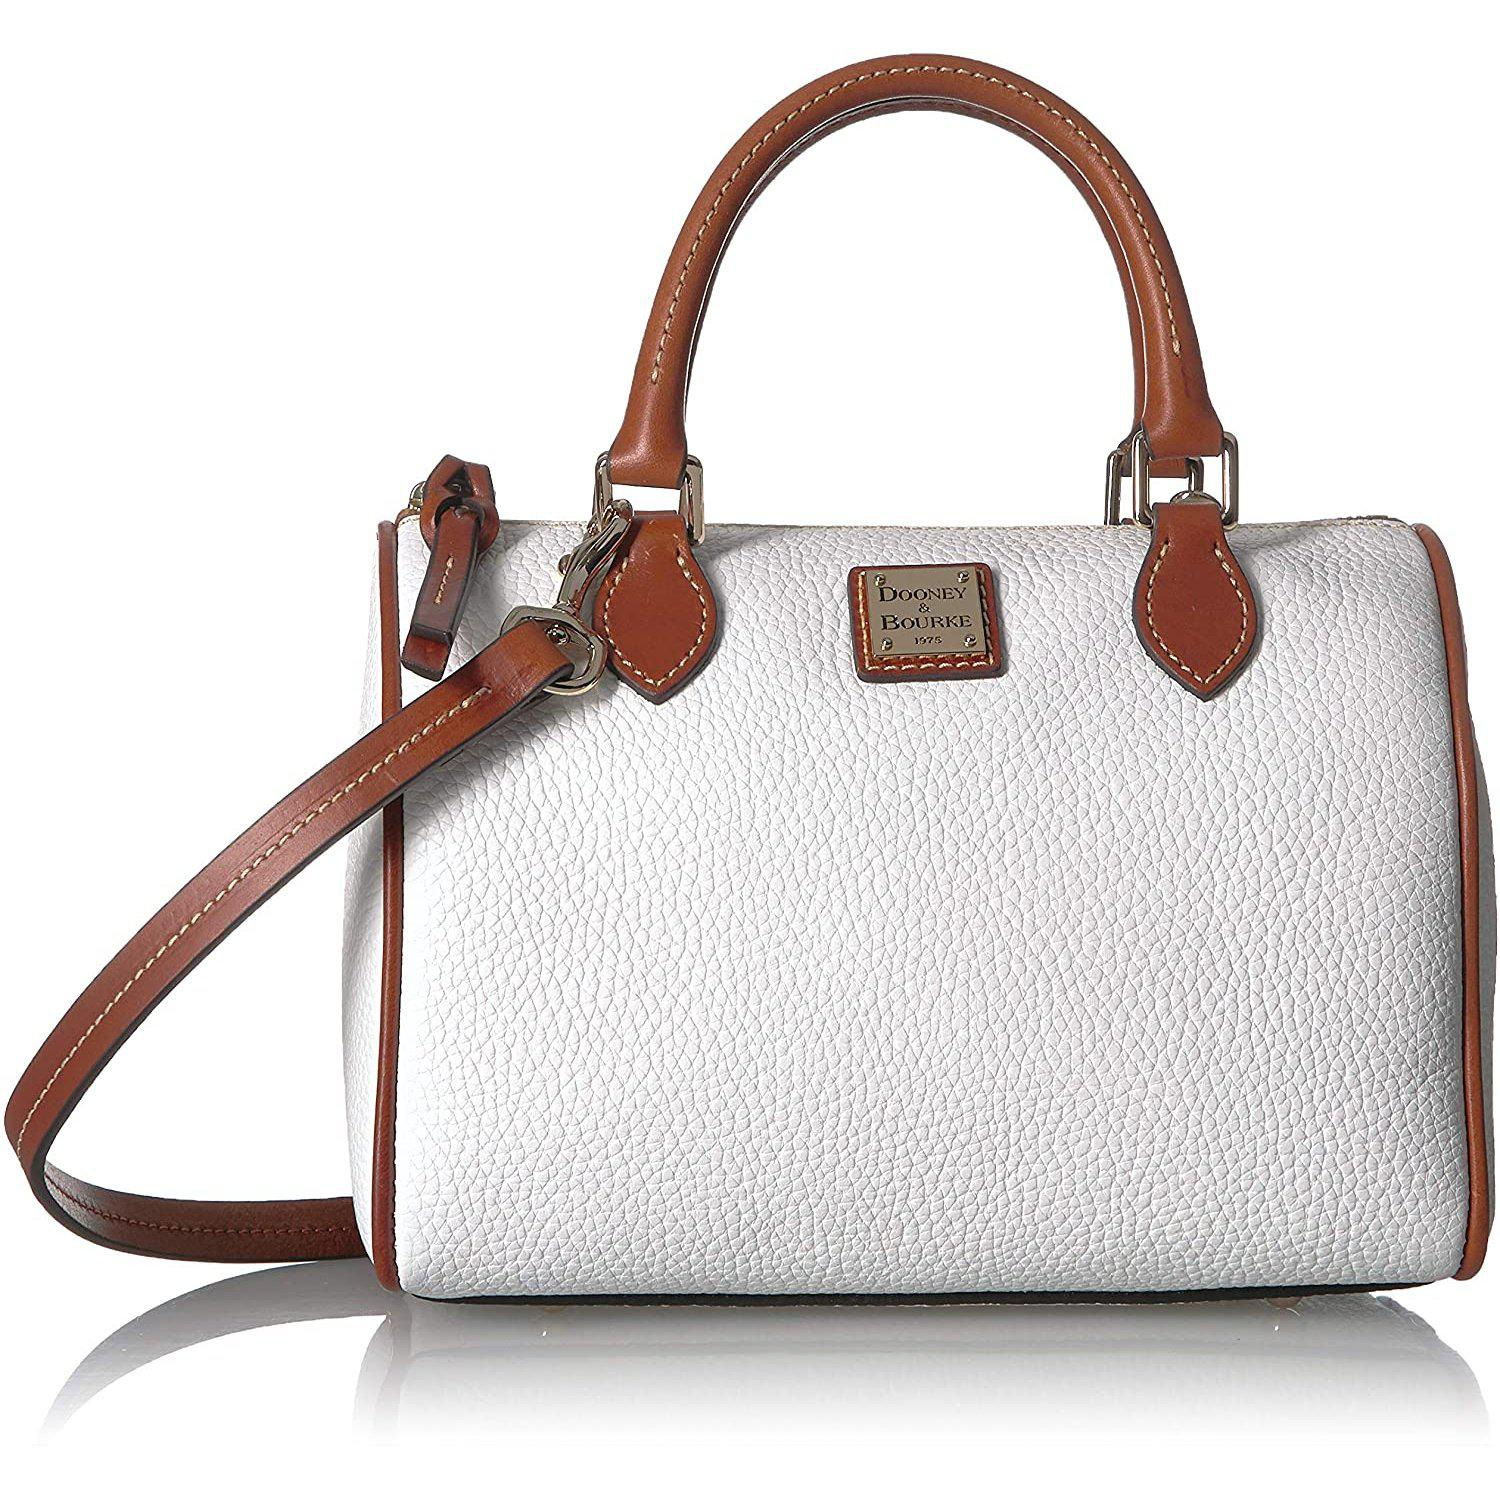 Trudy Pebble Leather Satchel